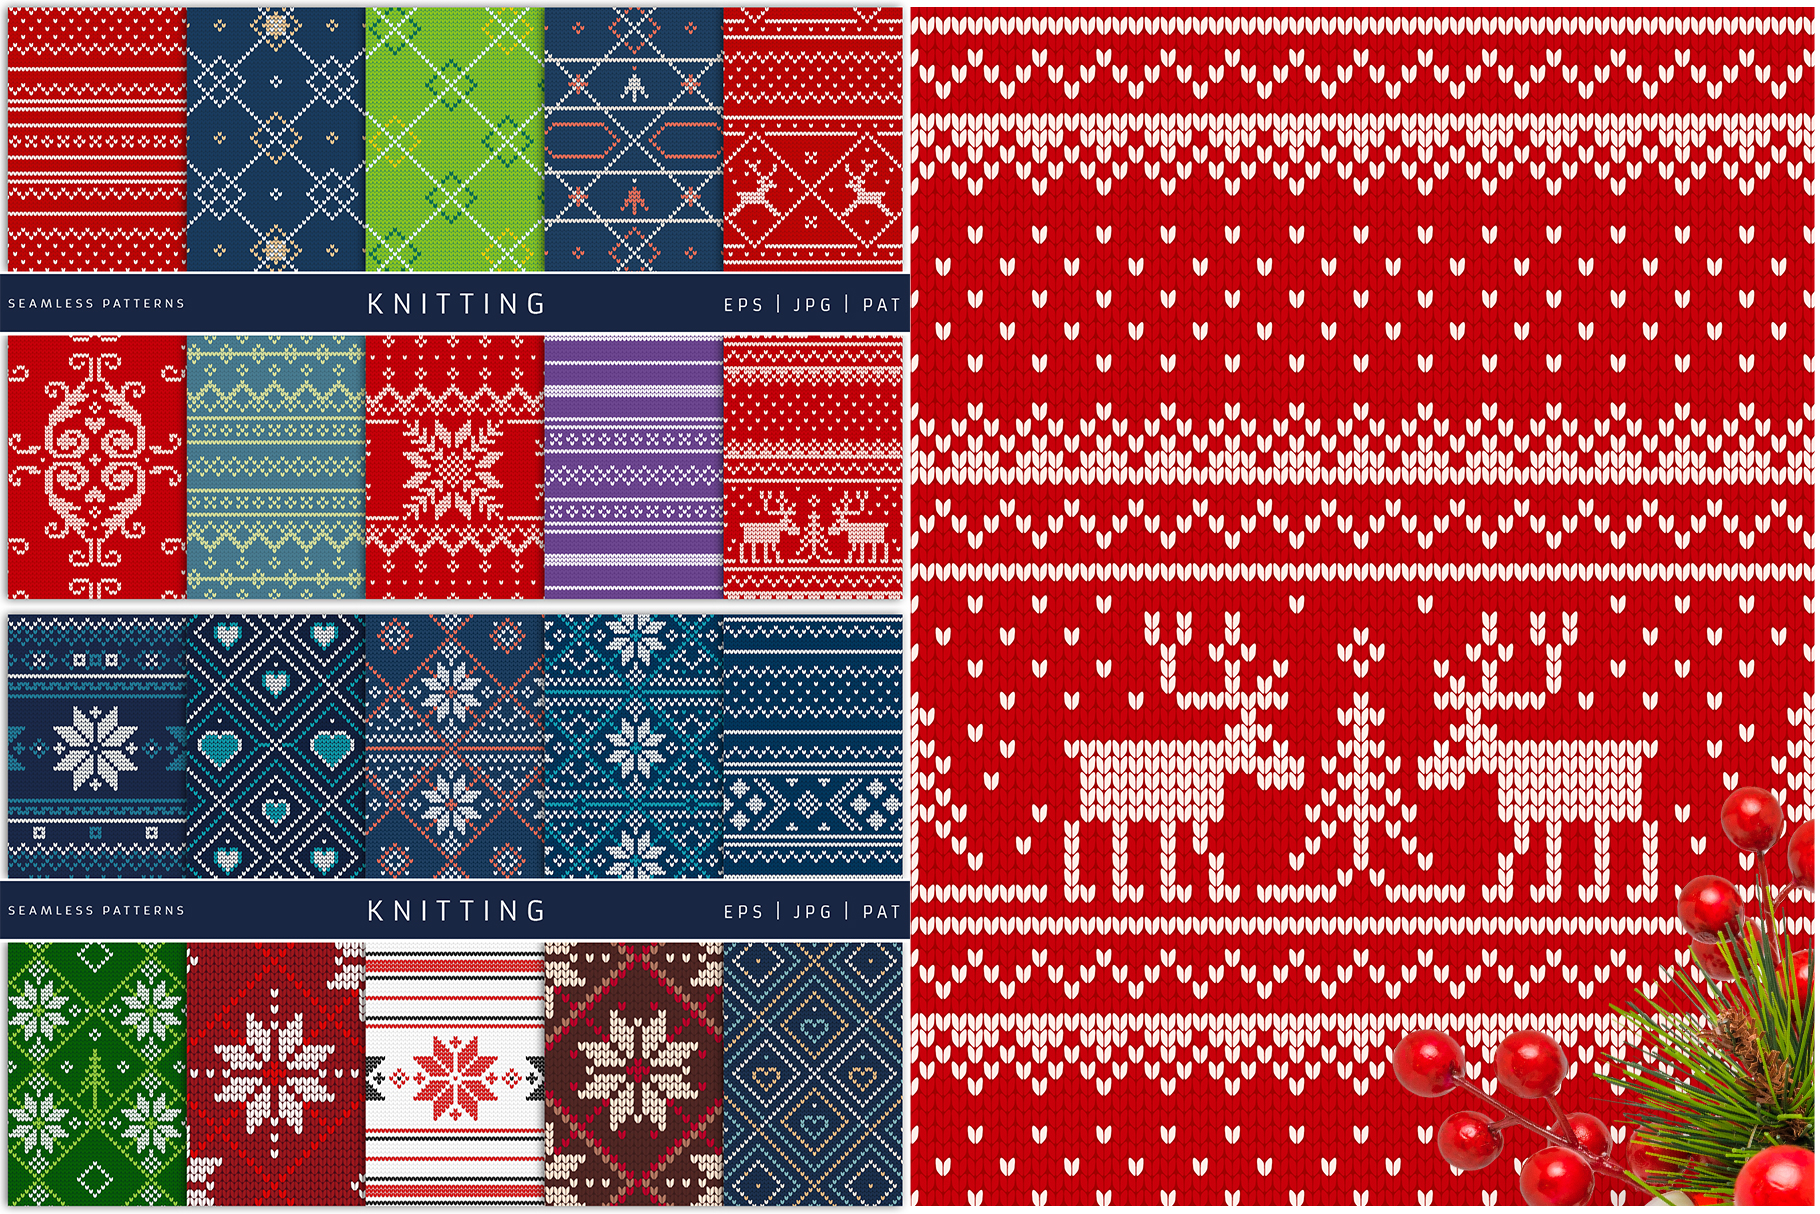 100 Seamless Patterns Vol.4 Christmas example image 2